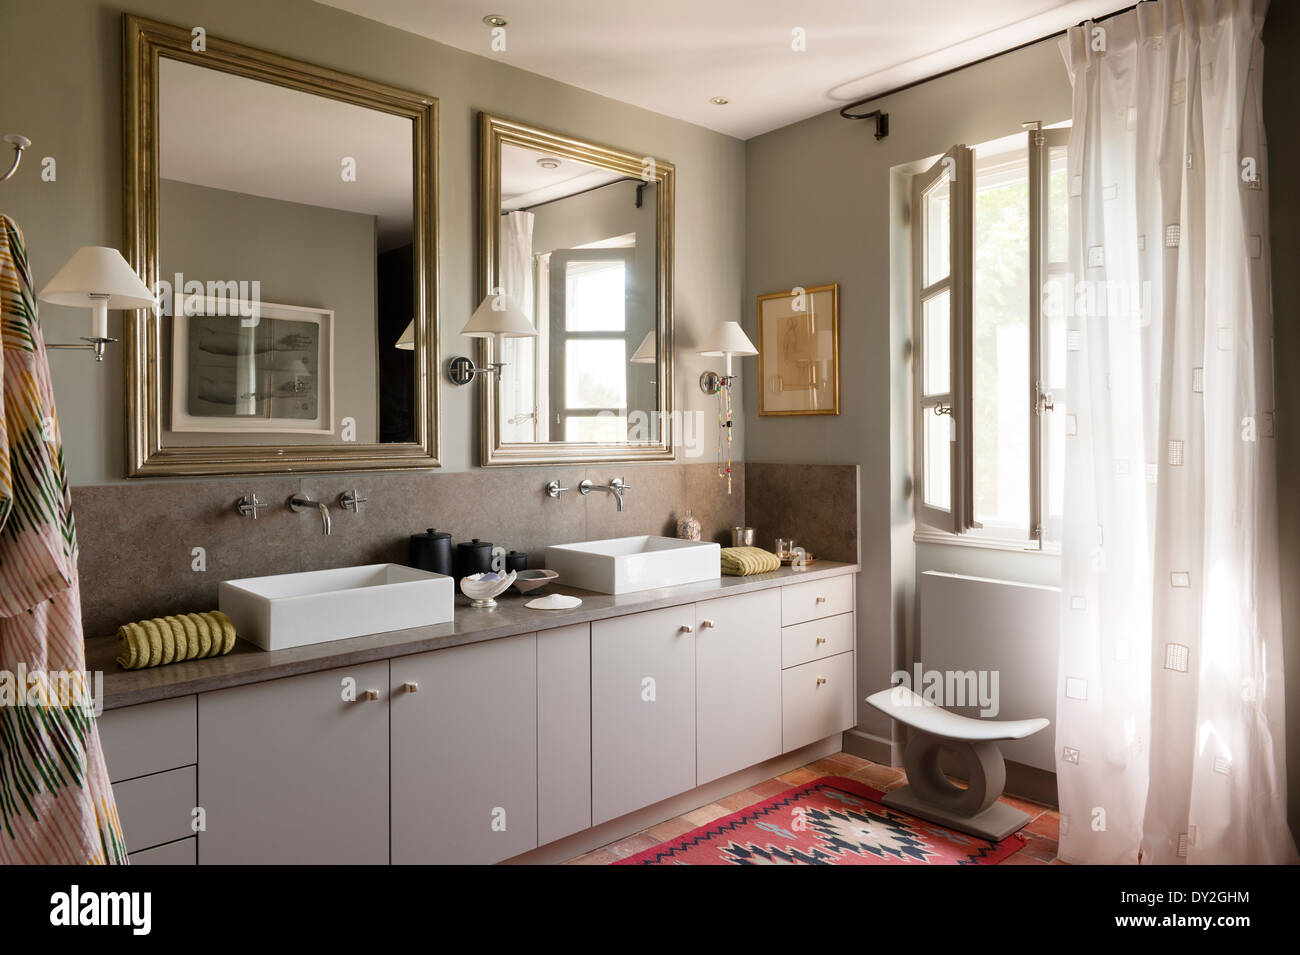 Modern square basins and mirrors in bathroom in grey tones and with ethnic rug. The wall paint is by Emery & Cie - Stock Image